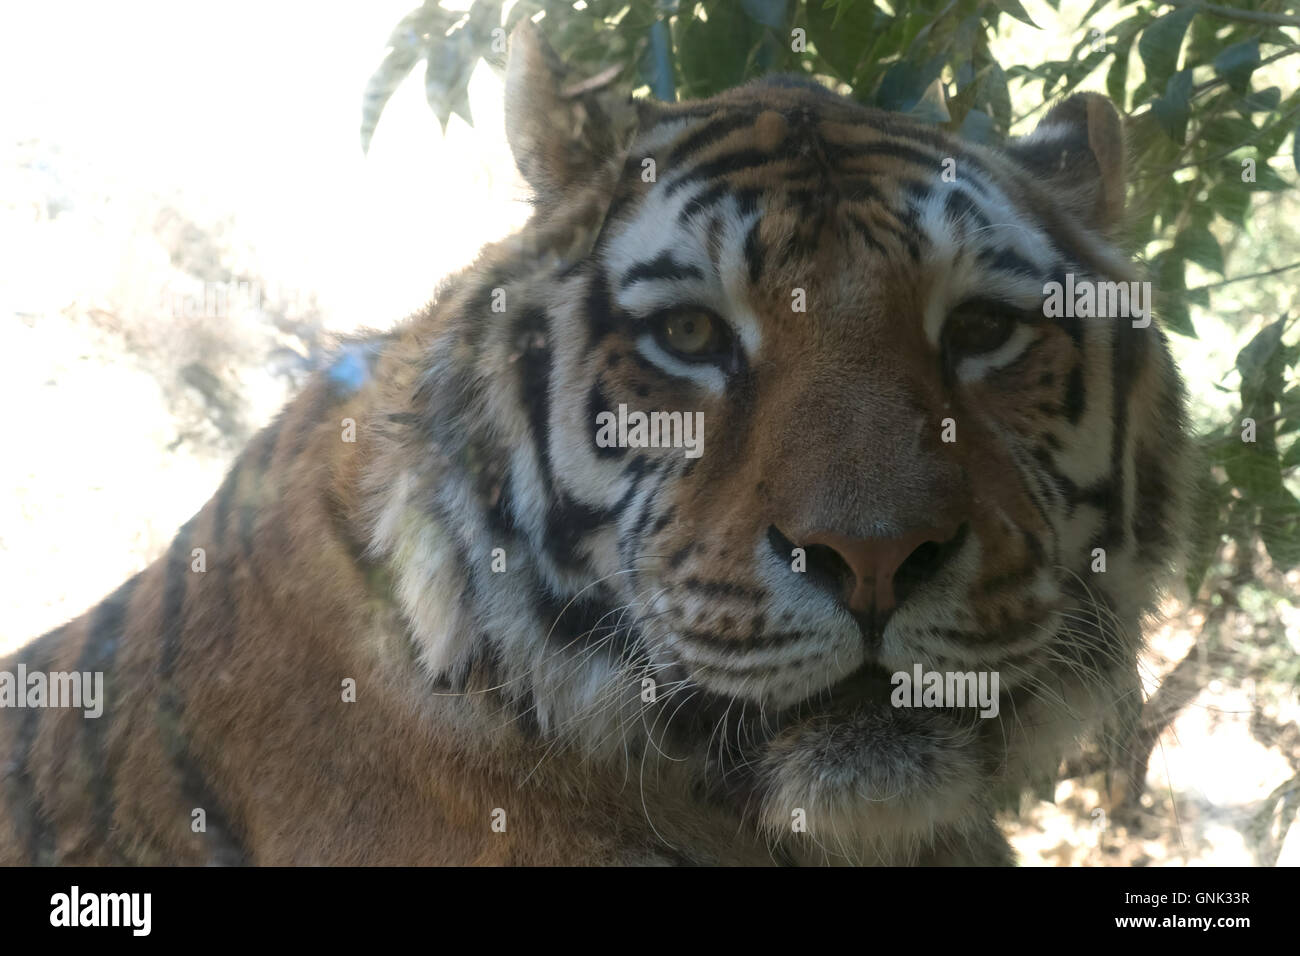 Tiger looking at camera. Asian wildlife in zoological gardens, wild animal in zoo - Stock Image